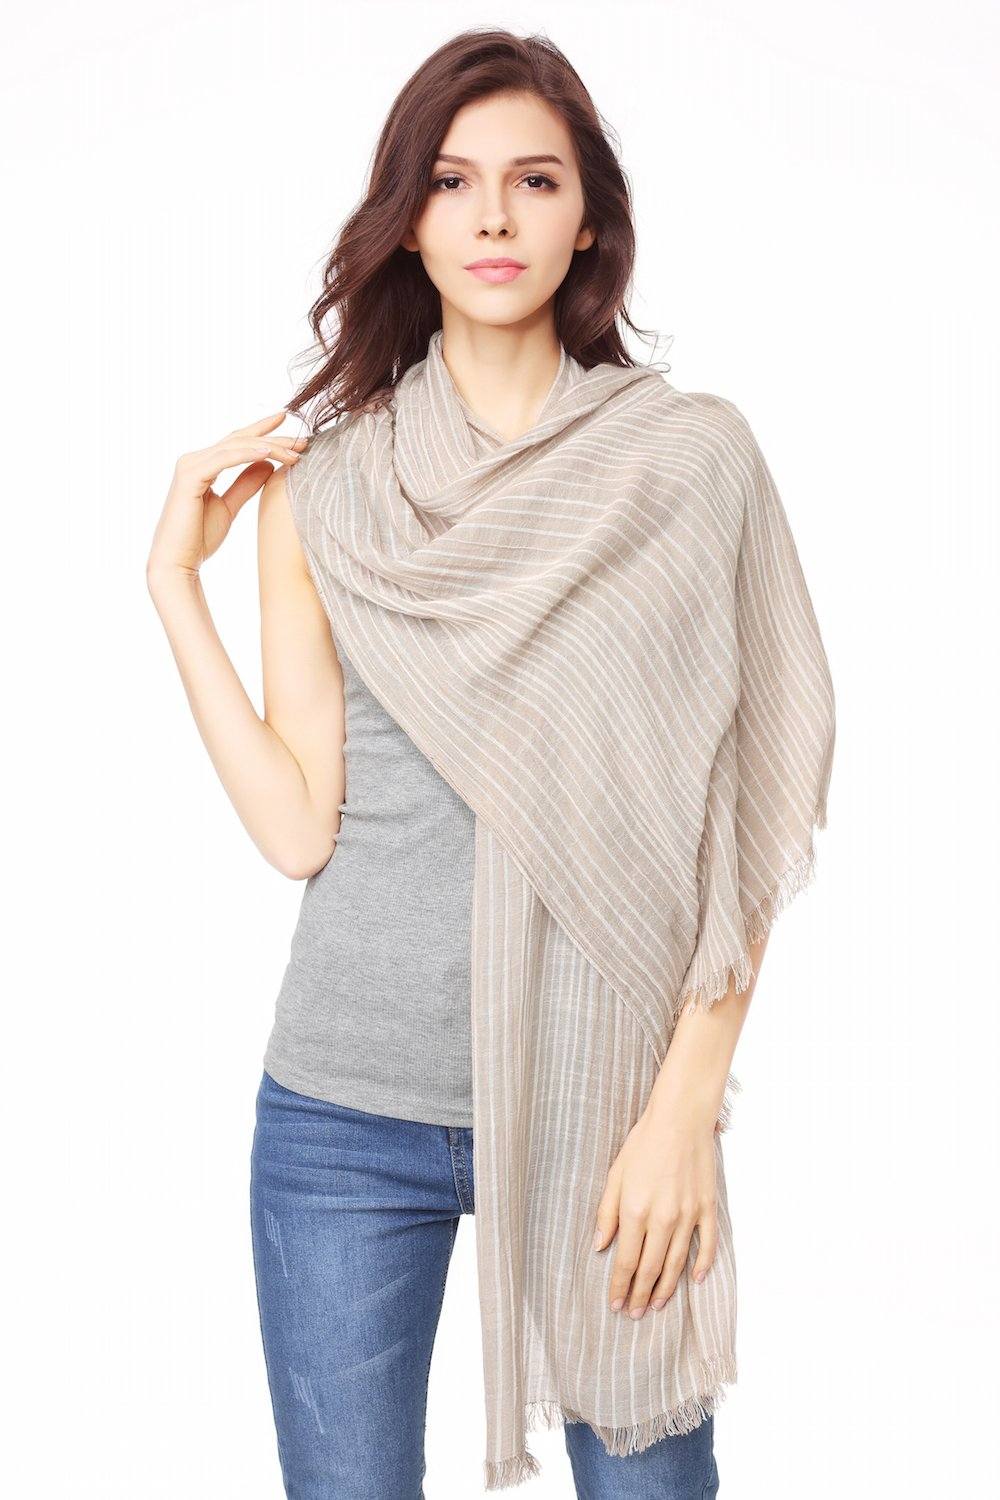 Cotton Scarf Shawl Wrap Soft Lightweight Scarves And Wraps For Men And Women. (Beige cream)